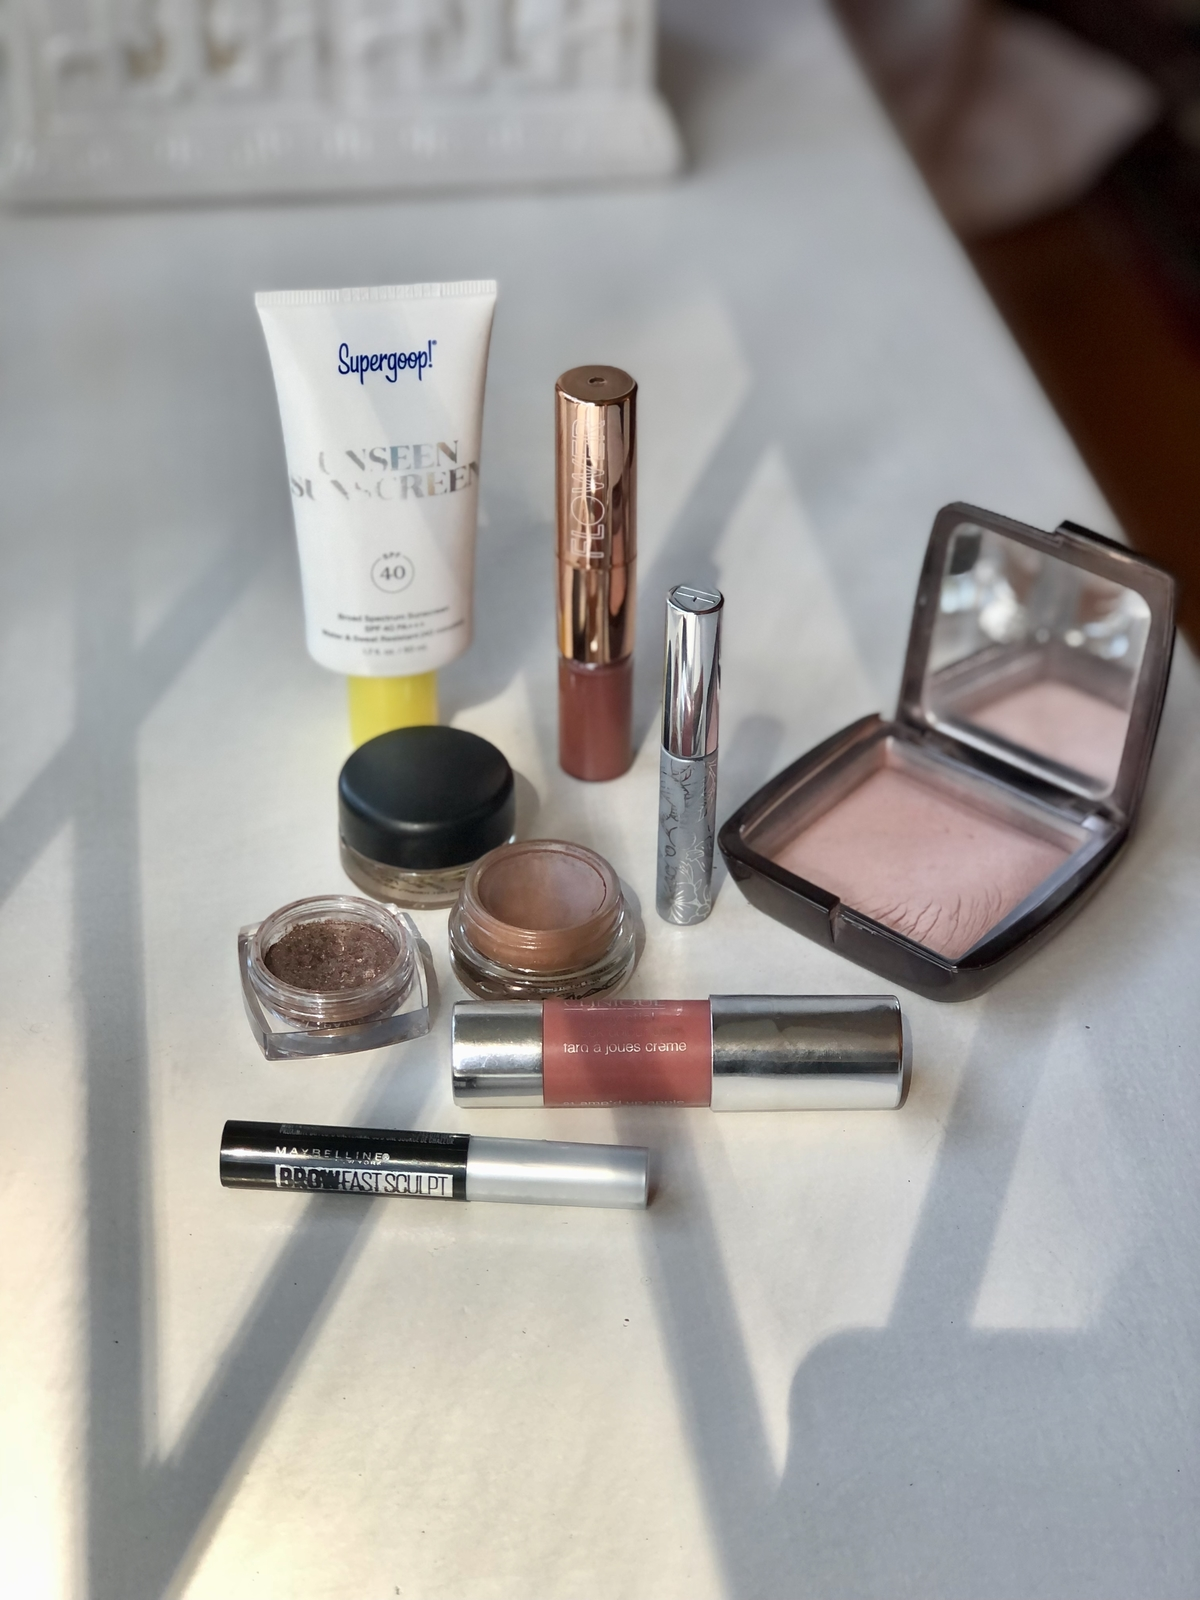 Some of my tried & true products